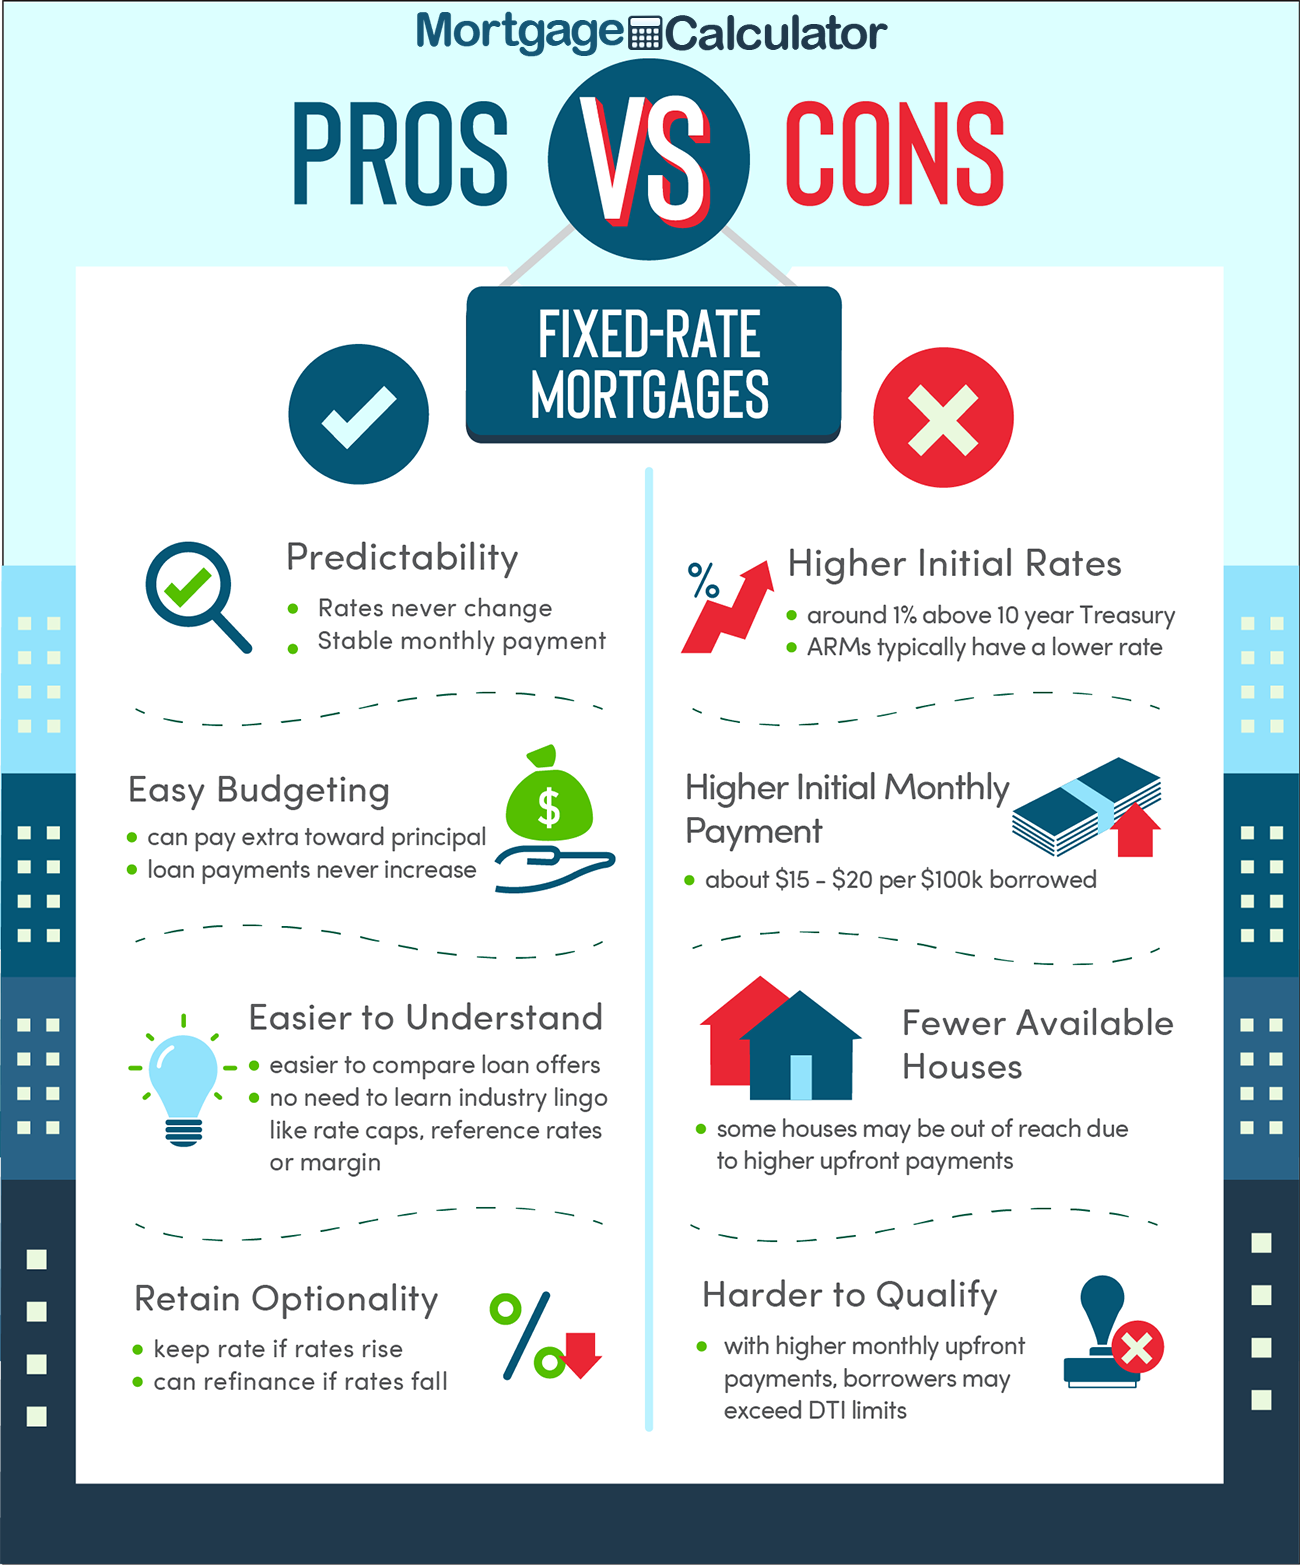 Pros and Cons of Fixed Rate Mortgages.